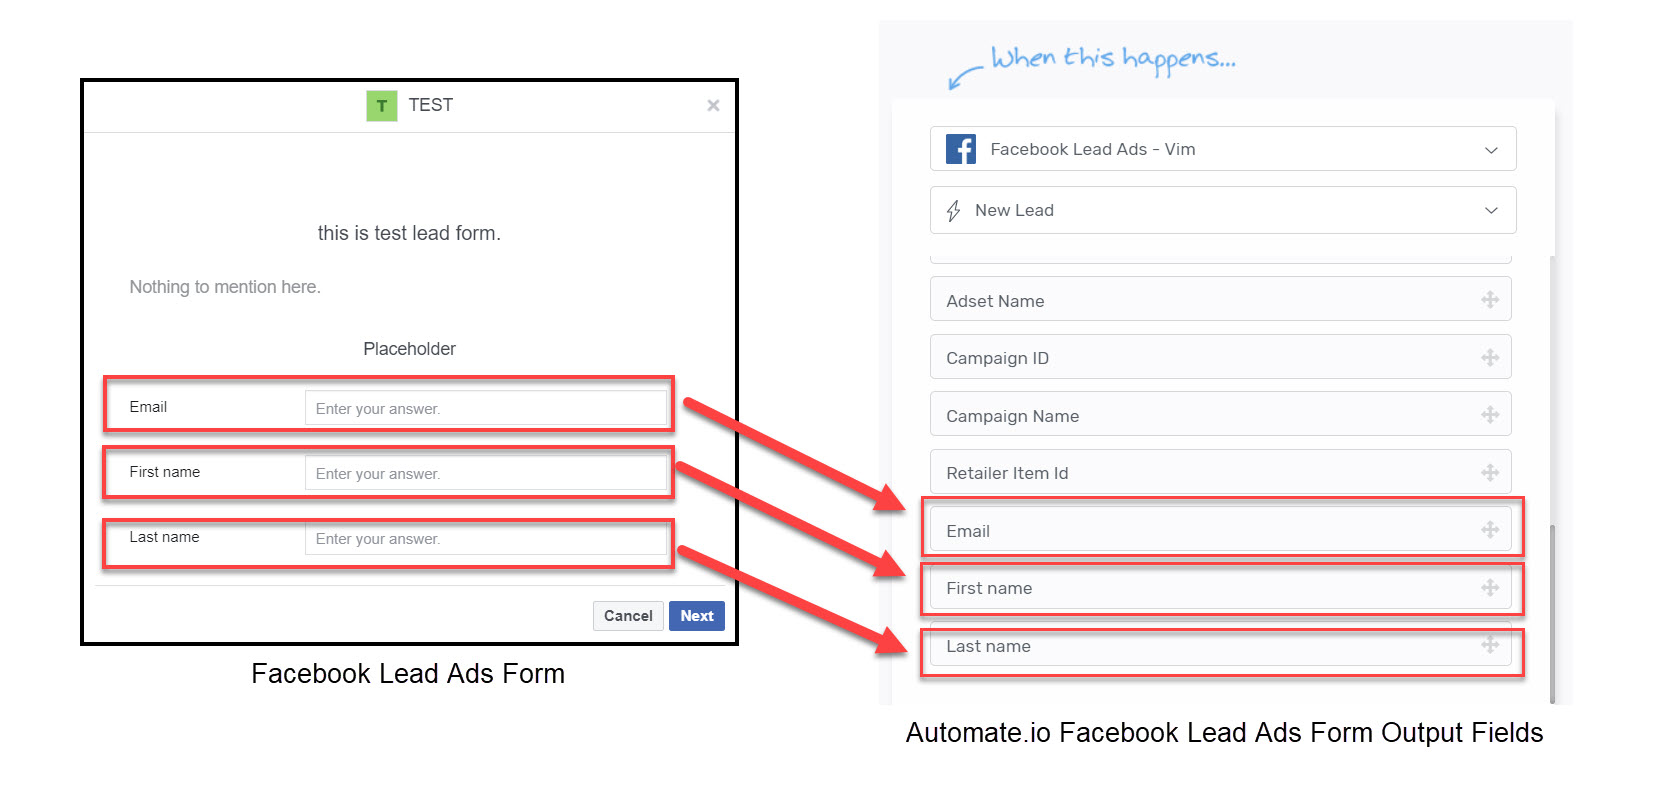 fb-lead-ads-form-to-automate.io-fields